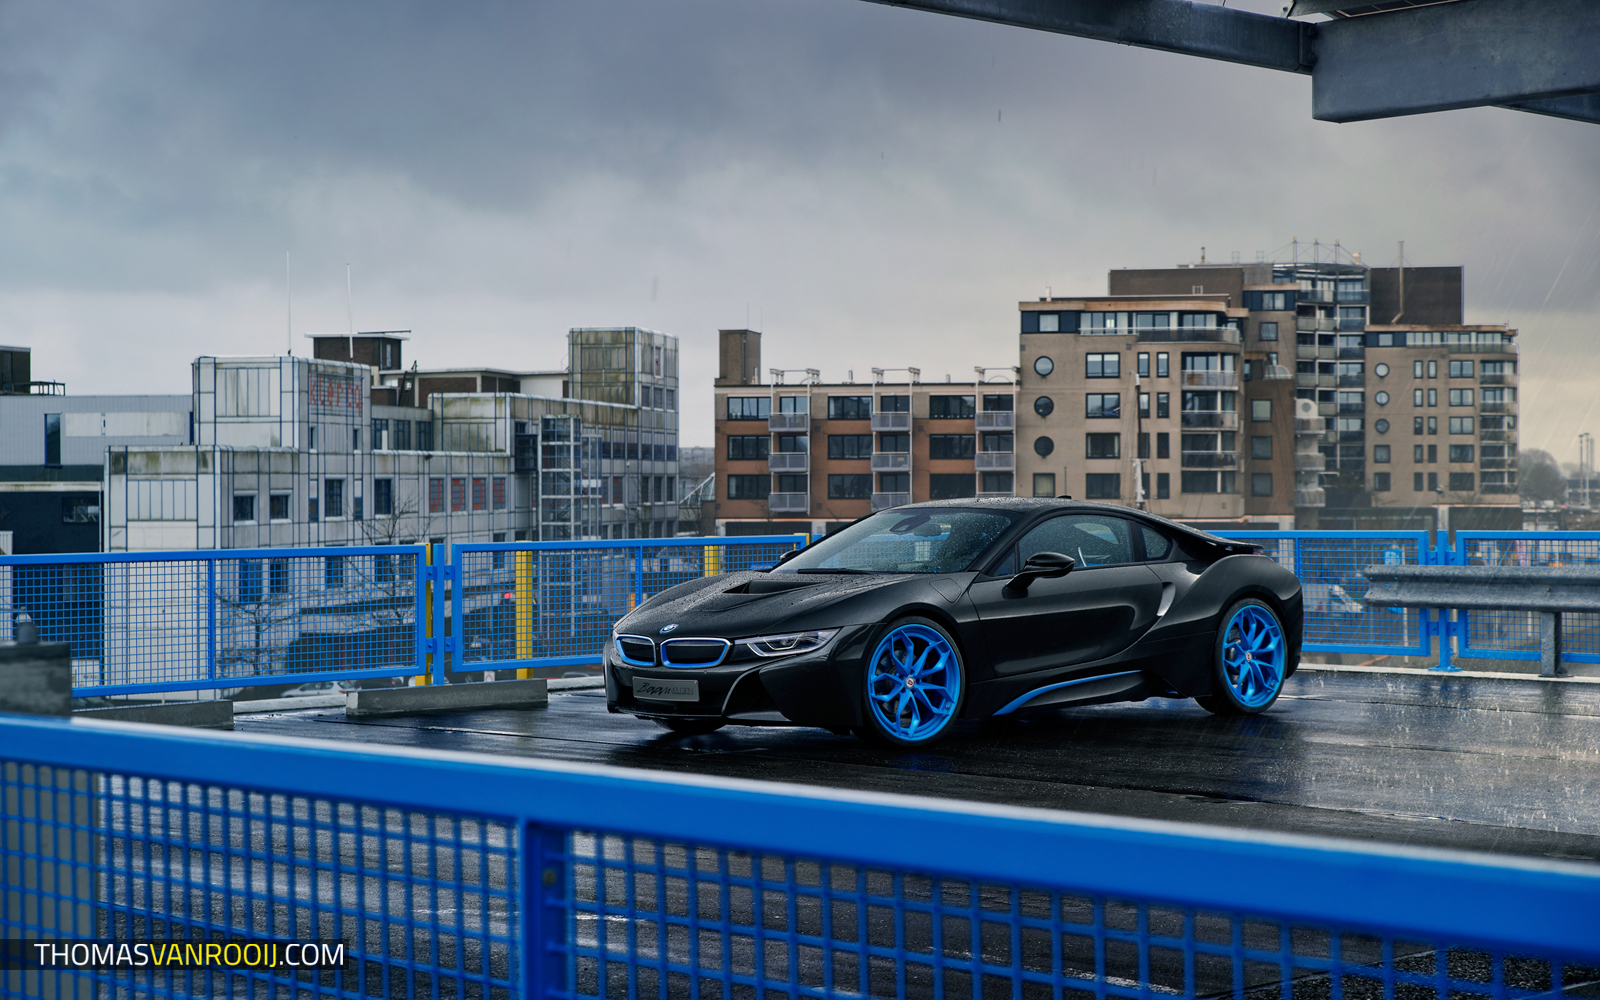 5_Thomas van Rooij Photography Fotografie BMW i8